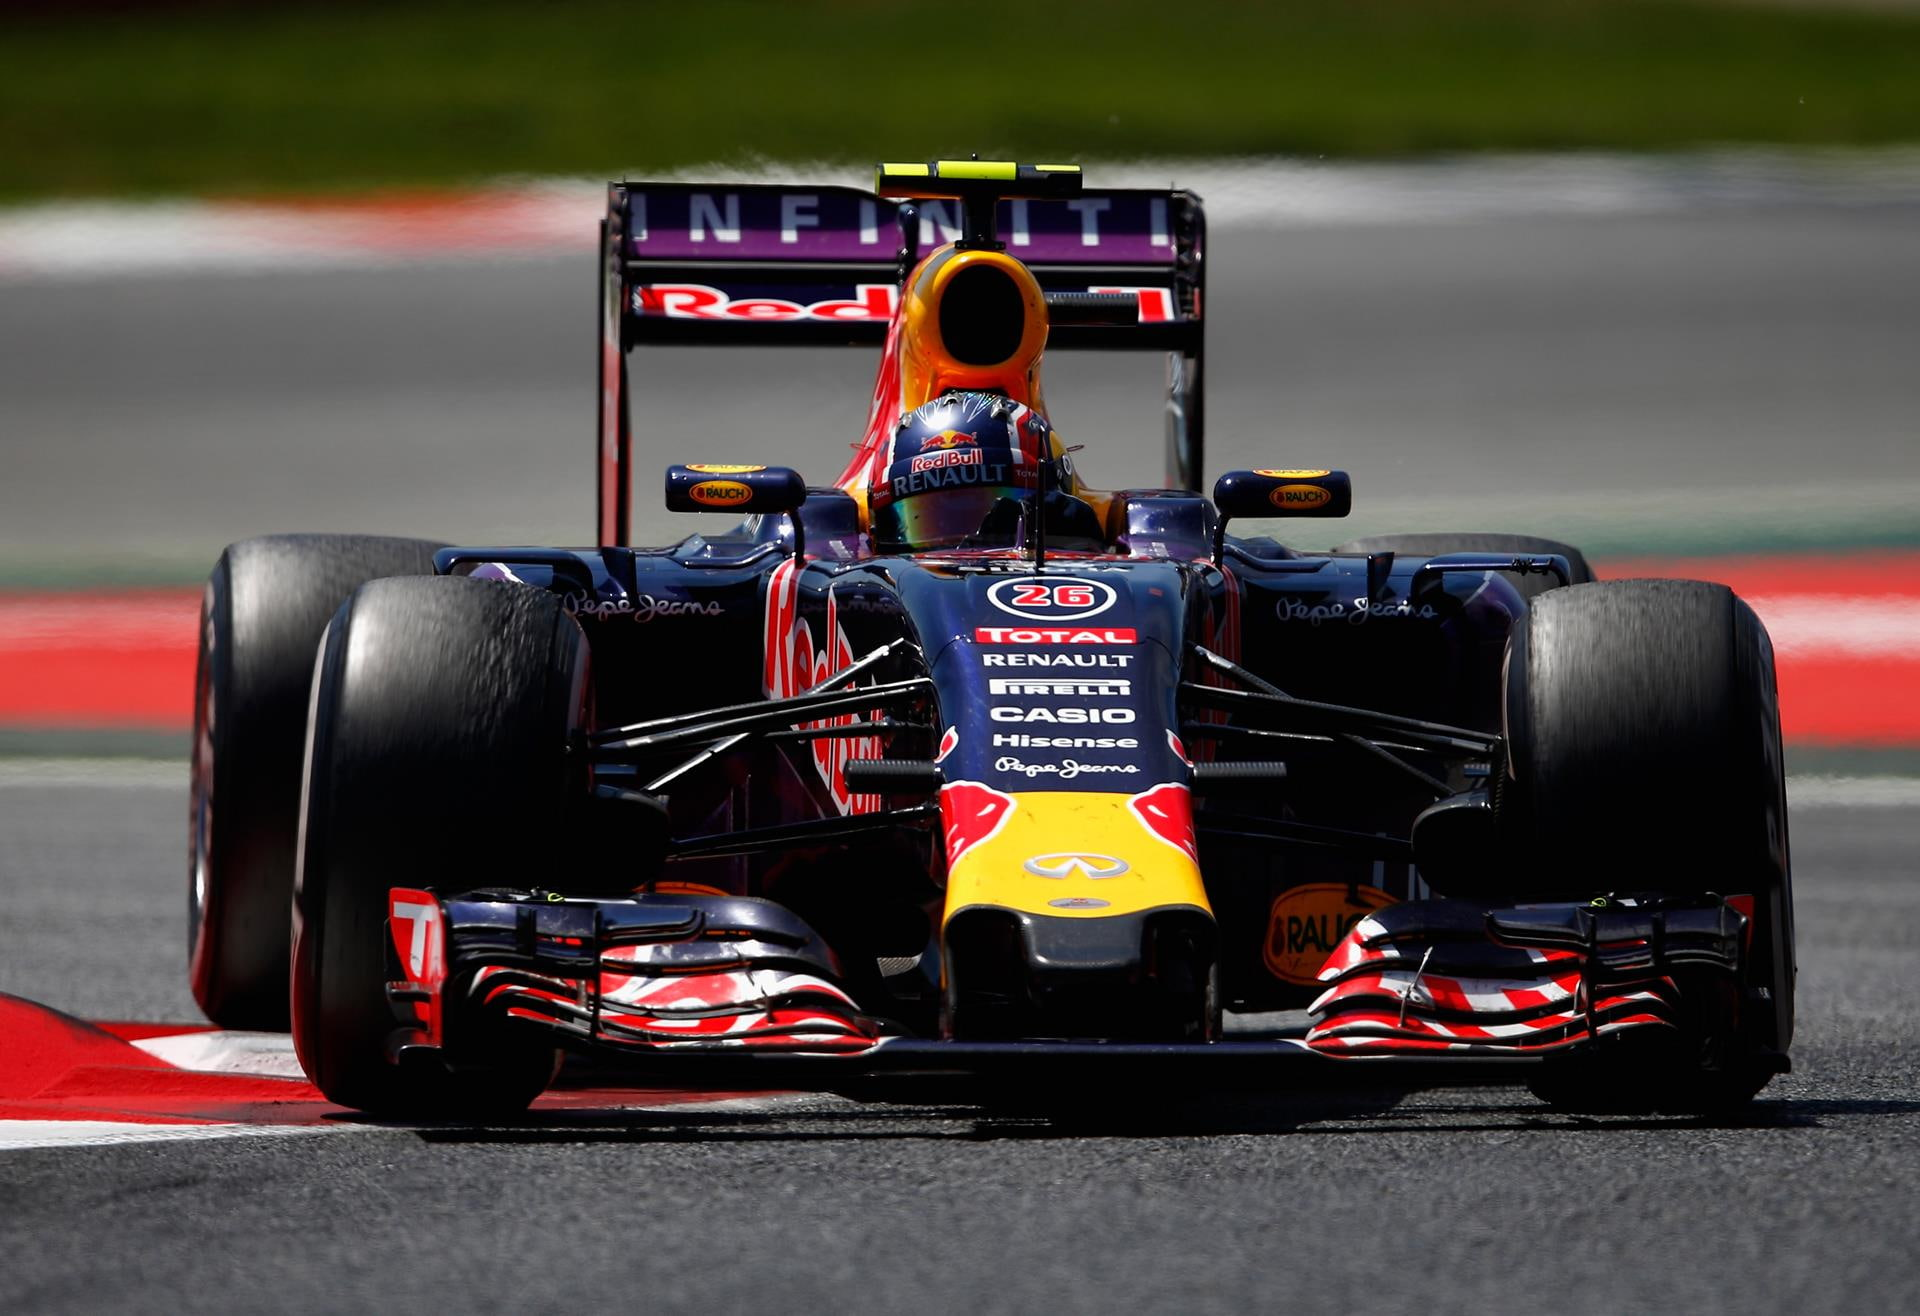 Red Bull Rb11 Hd Wallpaper Red Bull Rb11 Ricciardo Spanish Grand Prix 2015 F1